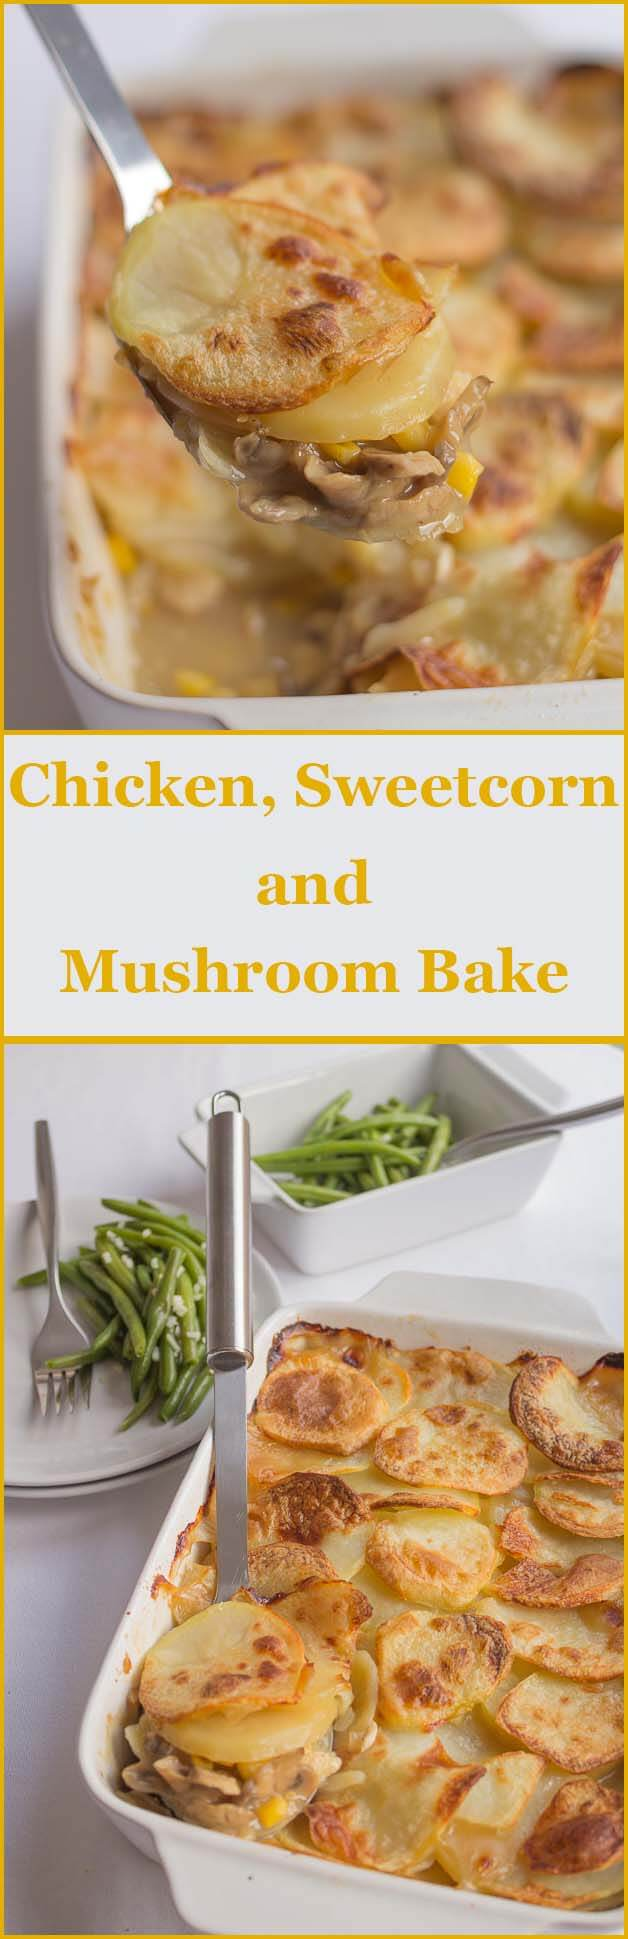 This chicken sweetcorn and mushroom bake is a delicious, nice and easy family bake. The recipe also includes my French style green beans side making this a great weekday meal.